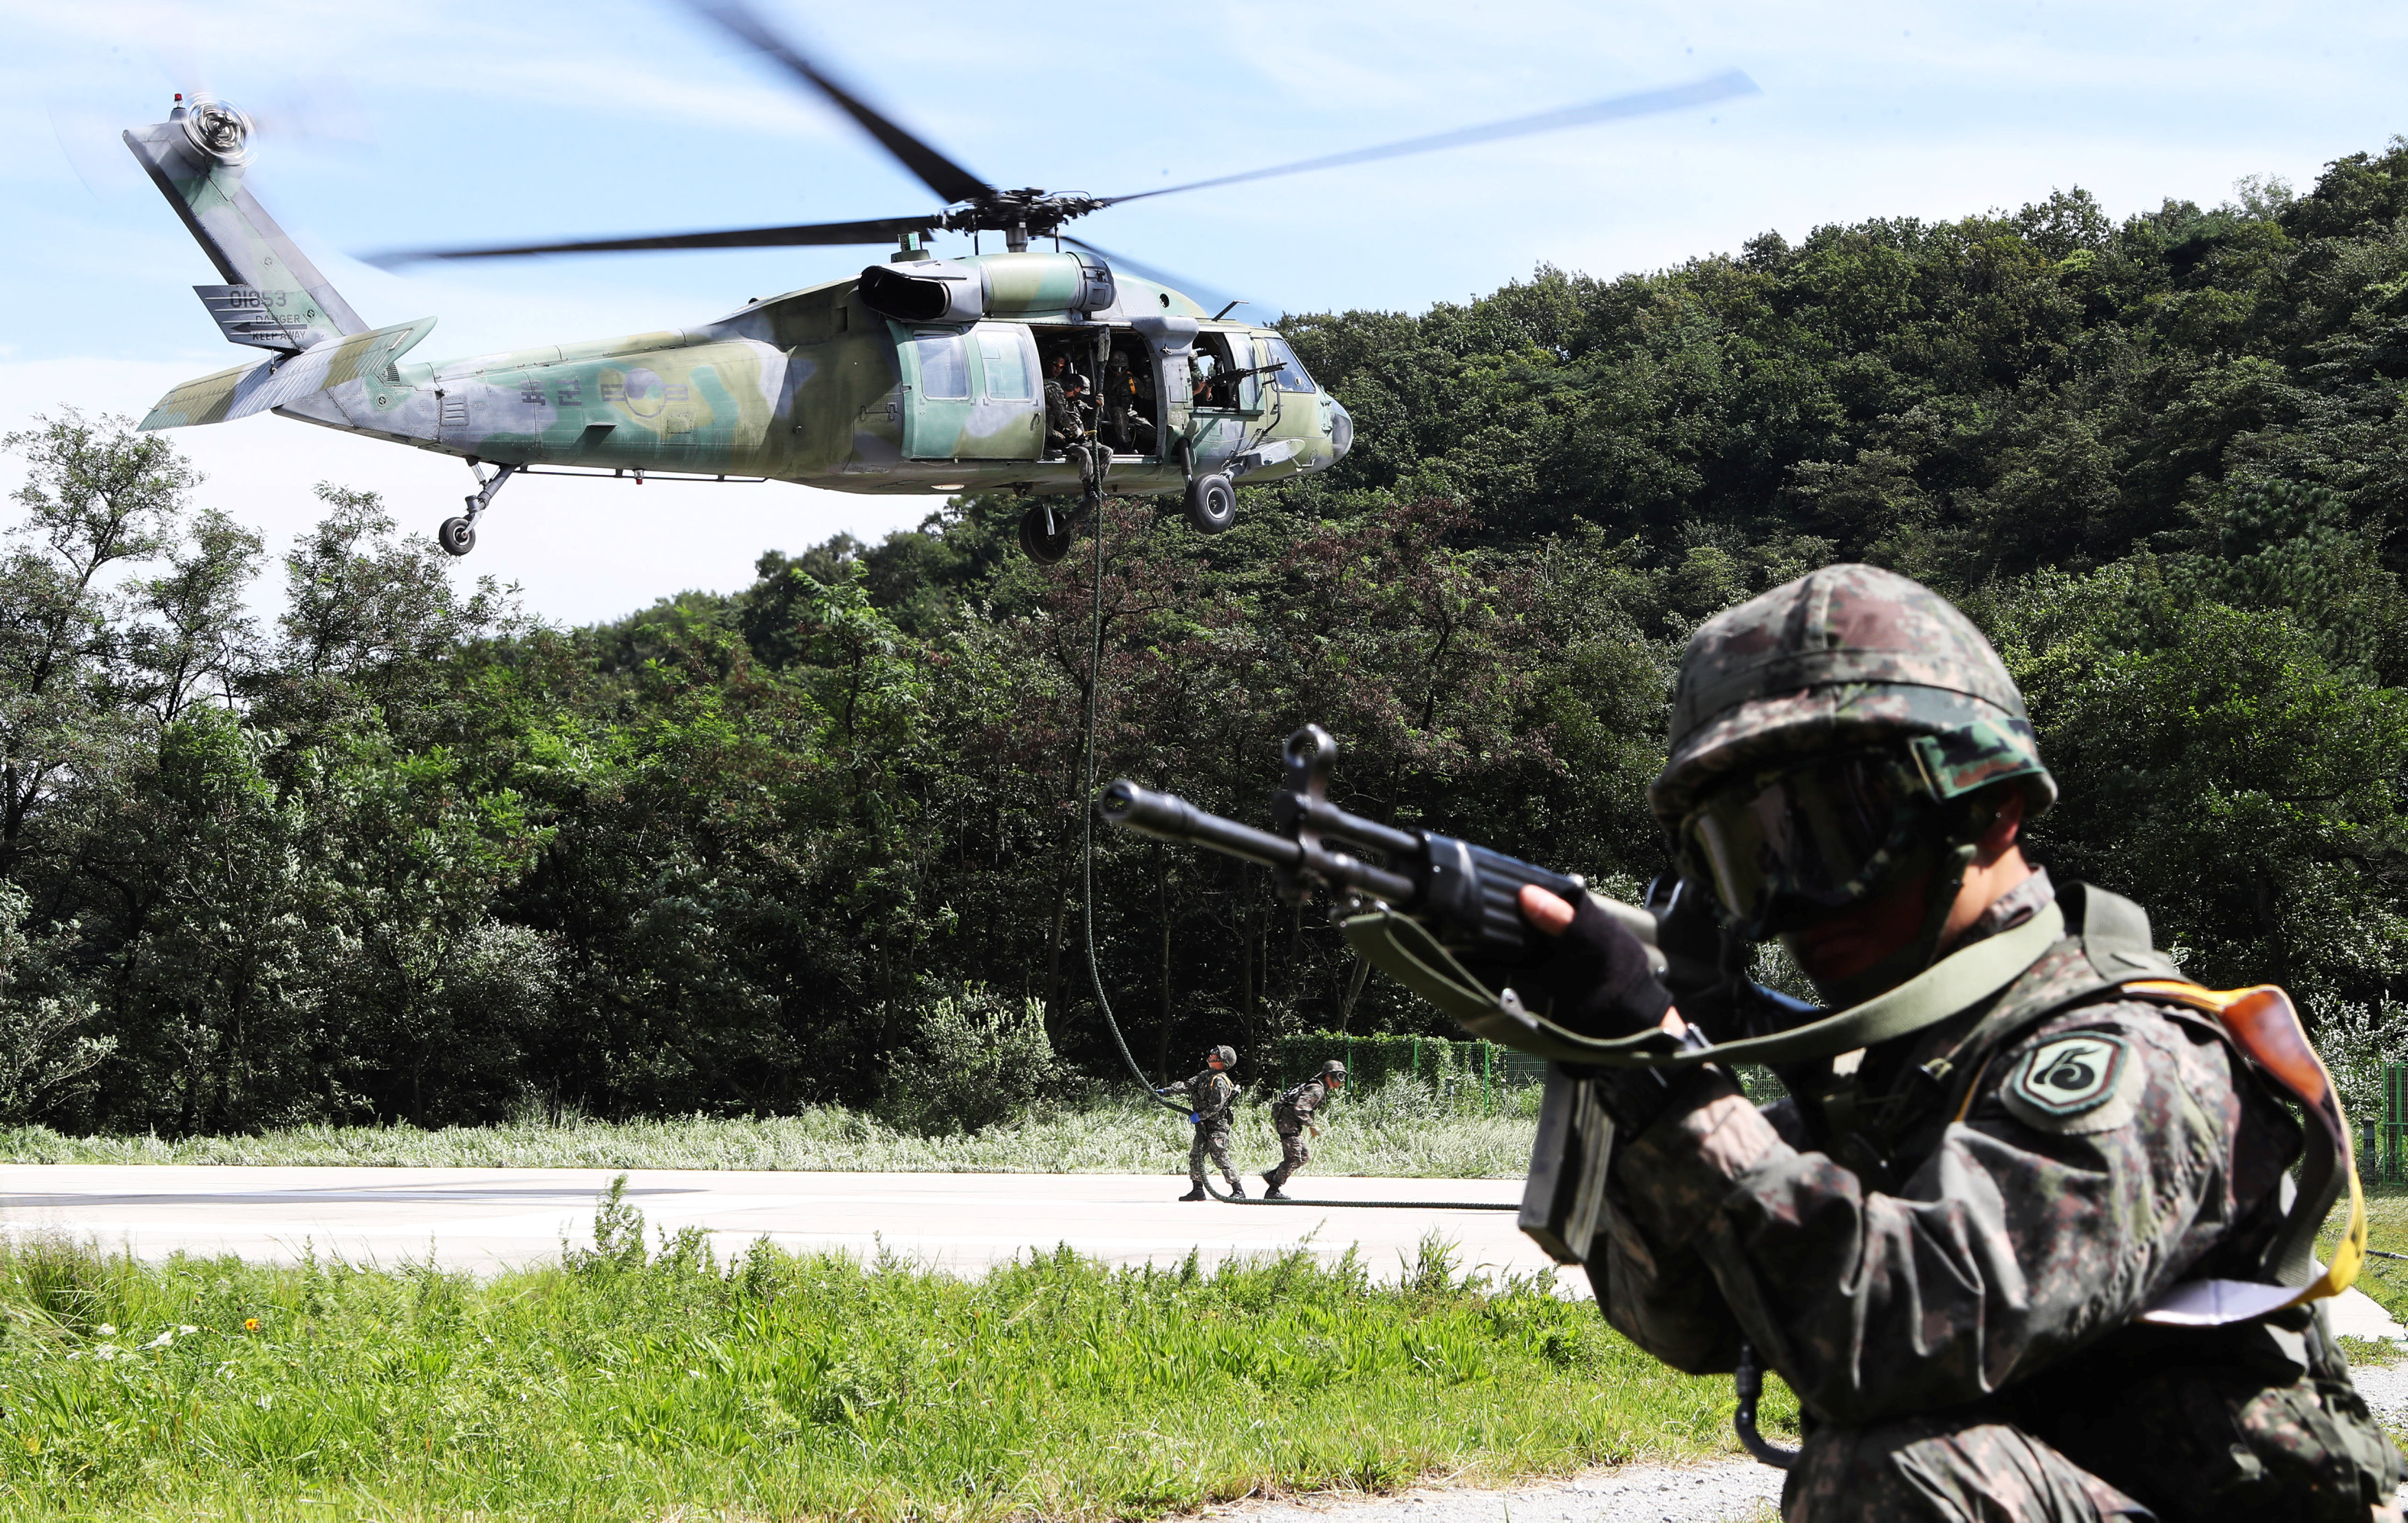 South Korean soldiers take part in a military drill held as a part of the Ulchi Freedom Guardian exercise in Yongin, South Korea on Aug. 29, 2017. (Hong Ki-Won/Yonhap/via REUTERS)